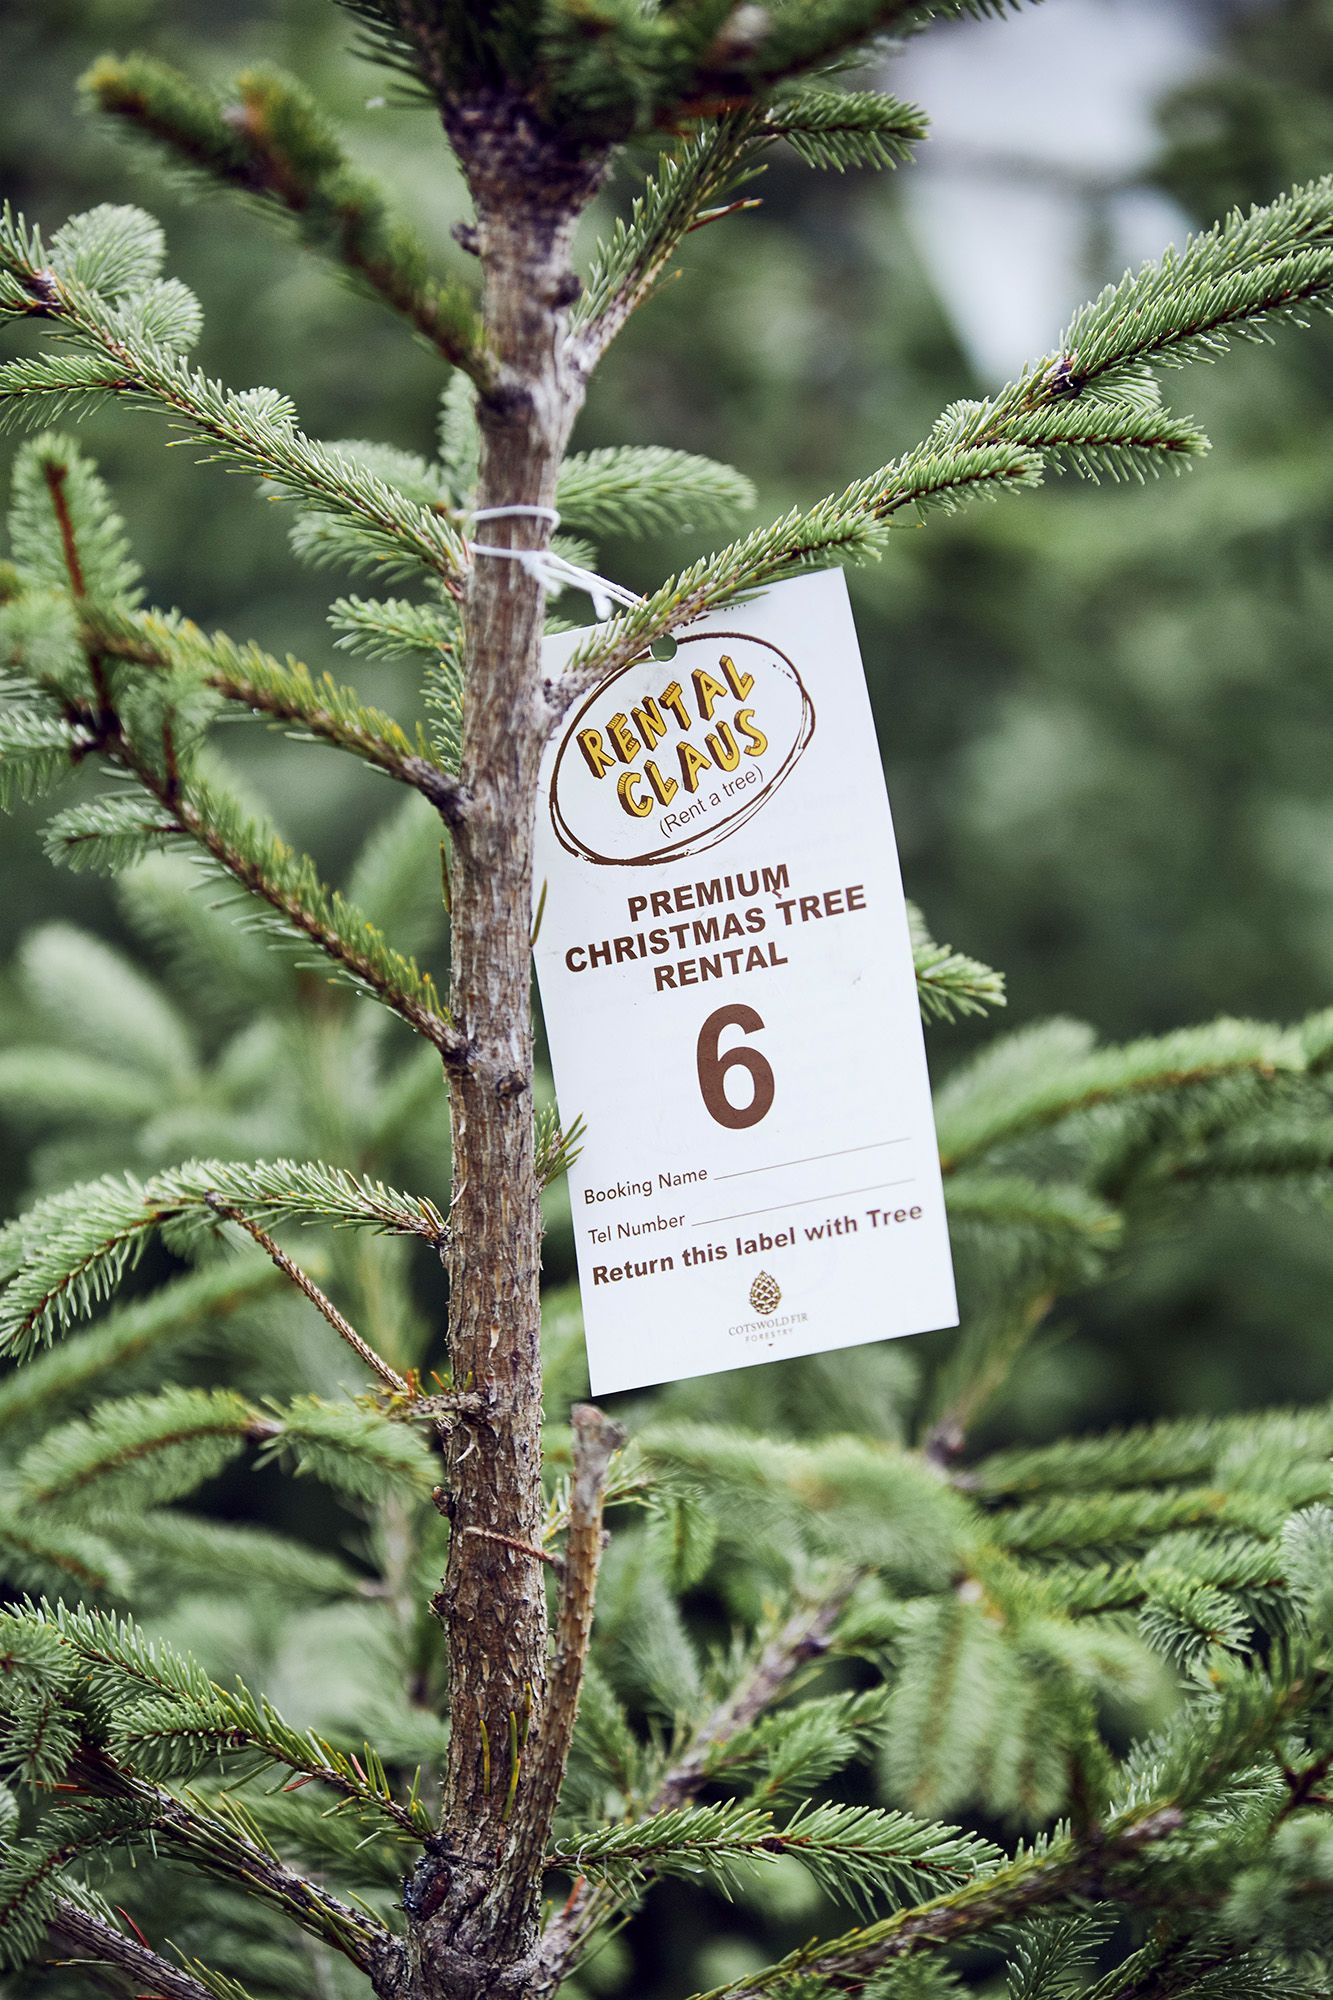 Rent a Christmas tree: Cotswold Fir's 'Rental Claus' is sustainable and reliable